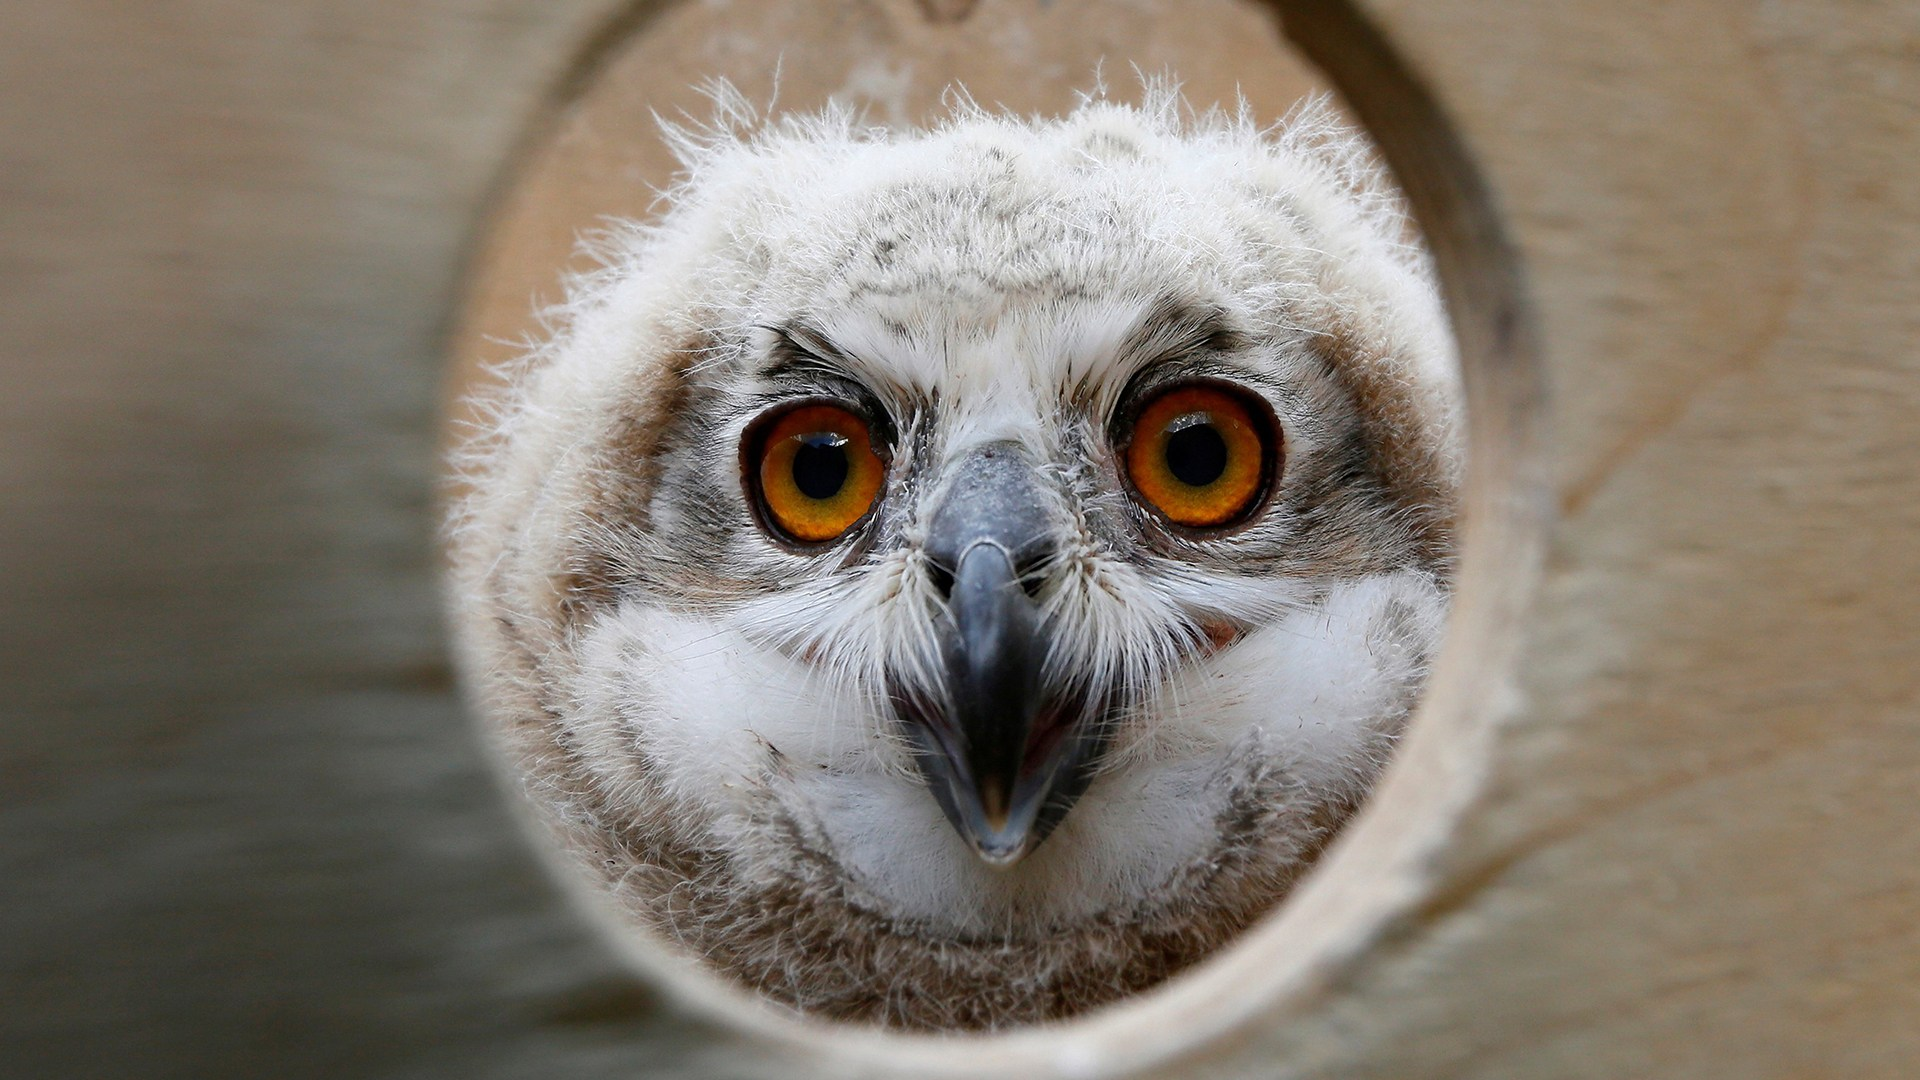 A 3-week-old Eurasian eagle owl looks out of a wooden box at the Royev Ruchey zoo on the suburbs of the Siberian city of Krasnoyarsk.